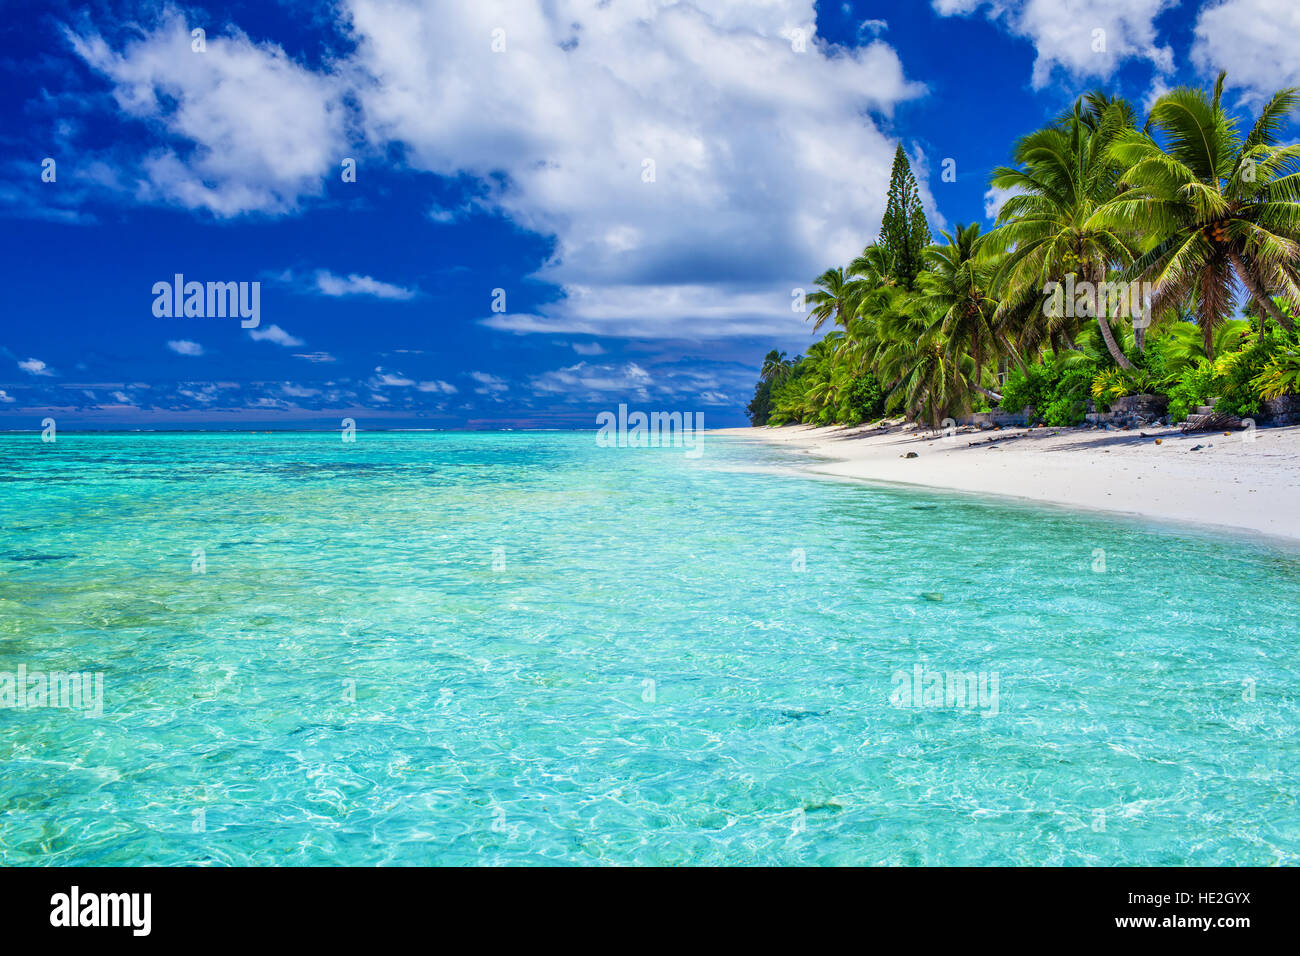 Amazing beach with white sand and palm trees on Rarotonga, Cook Islands - Stock Image